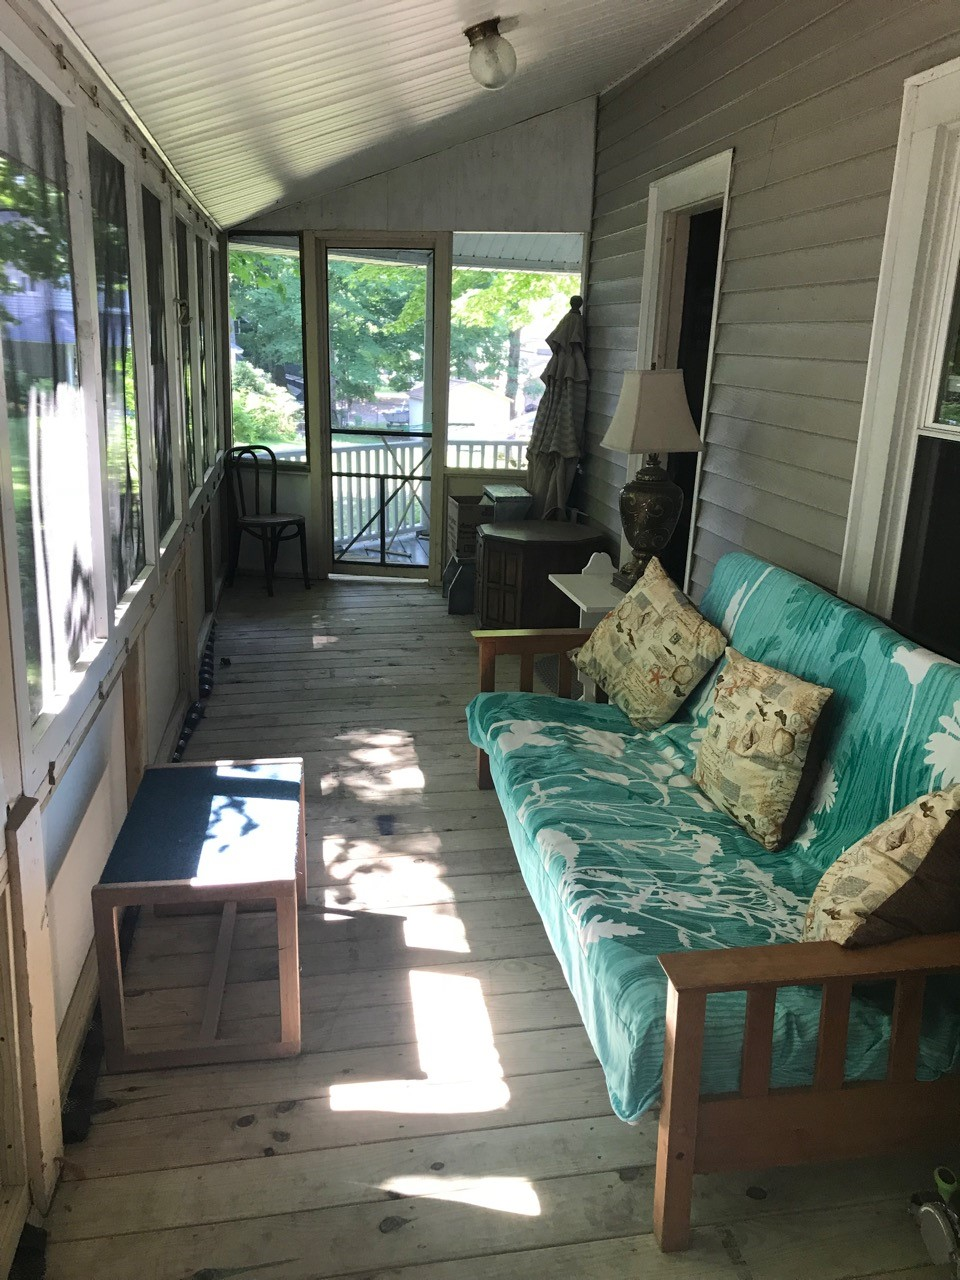 ENCLOSED PORCH IN BACK OF HOME FACING PRIVATE WOODS